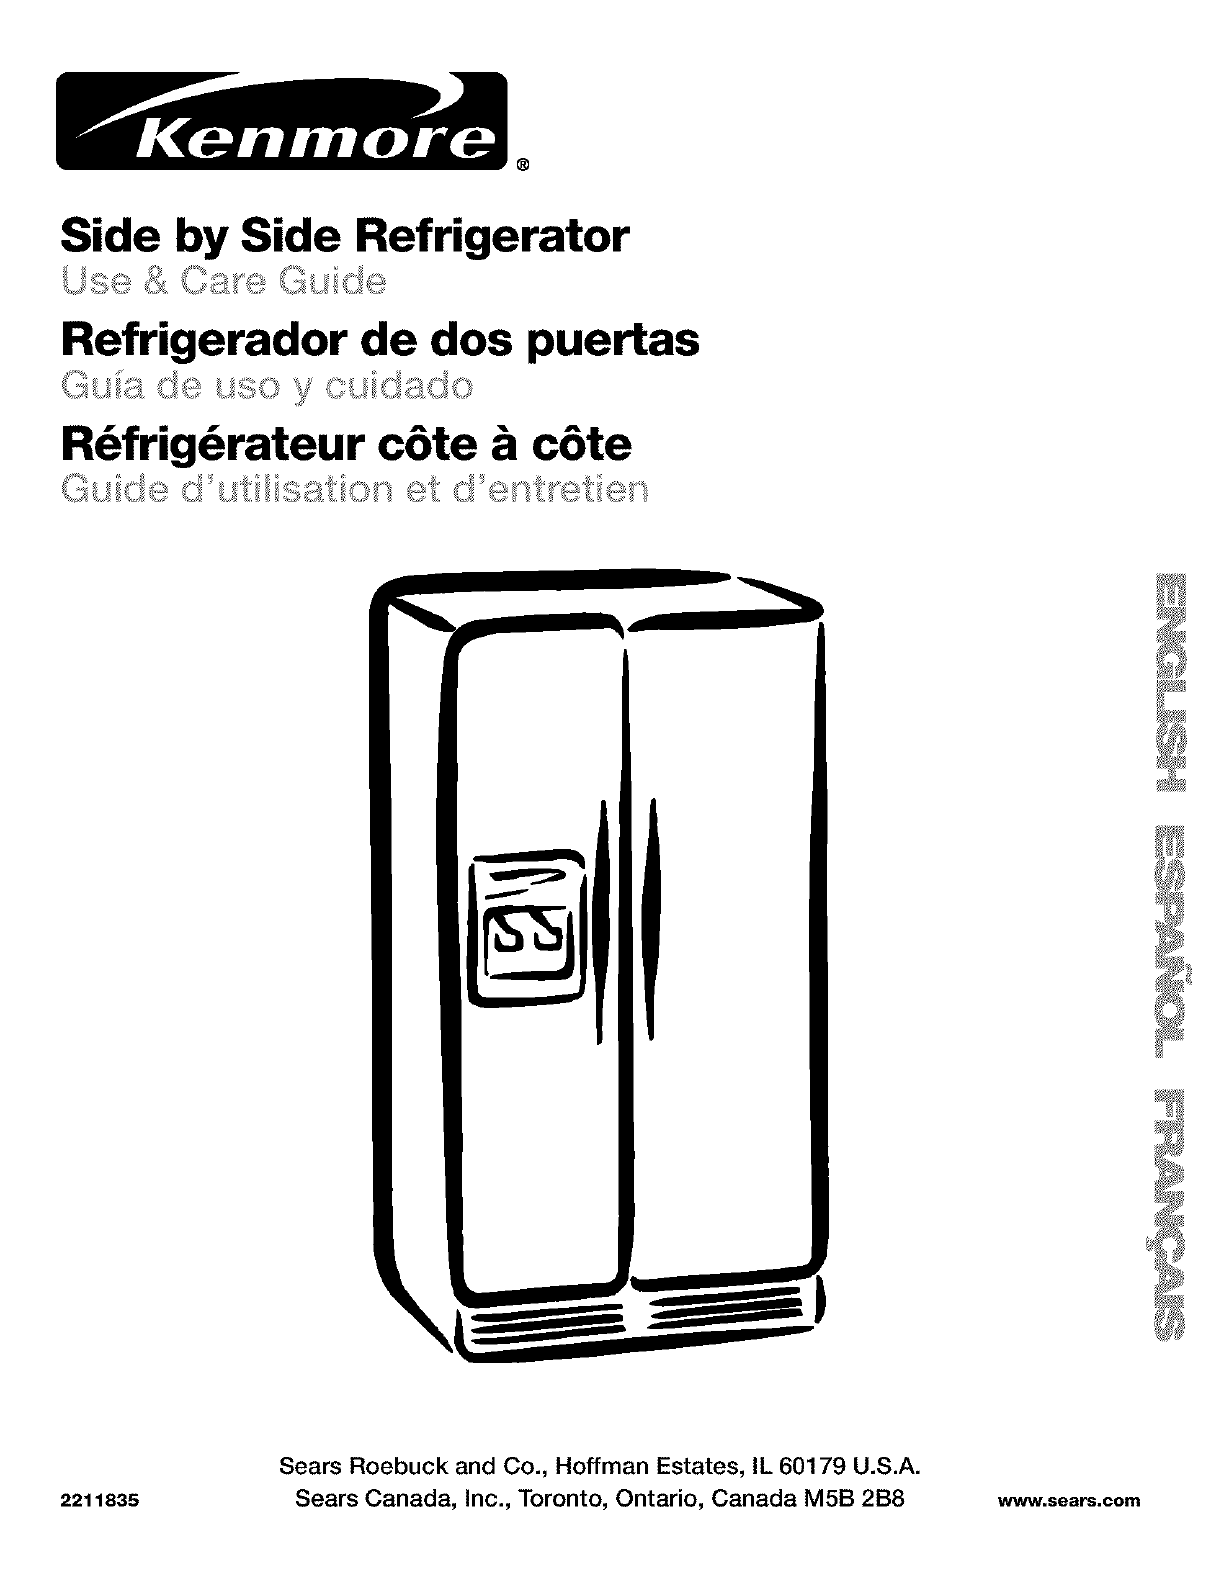 7f7c209c 3a82 4c01 aecb 31a71b630337 bg1 kenmore refrigerator 106 user guide manualsonline com wiring diagram for kenmore elite refrigerator at readyjetset.co